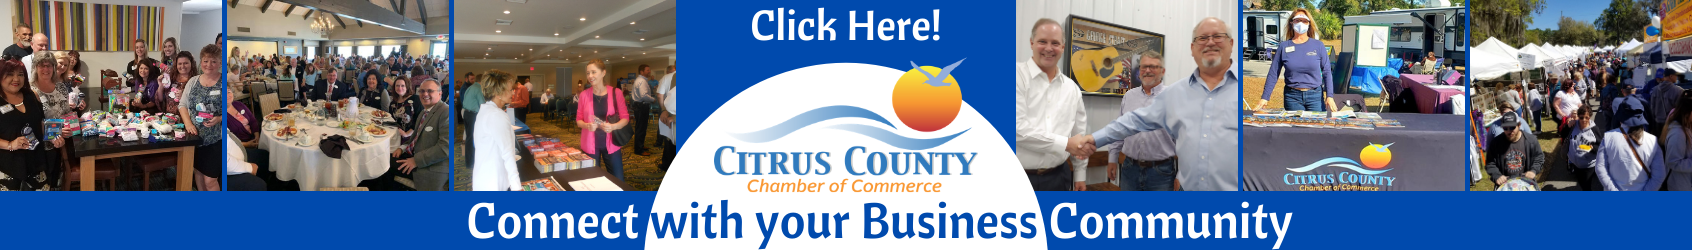 connect with citrus county chamber